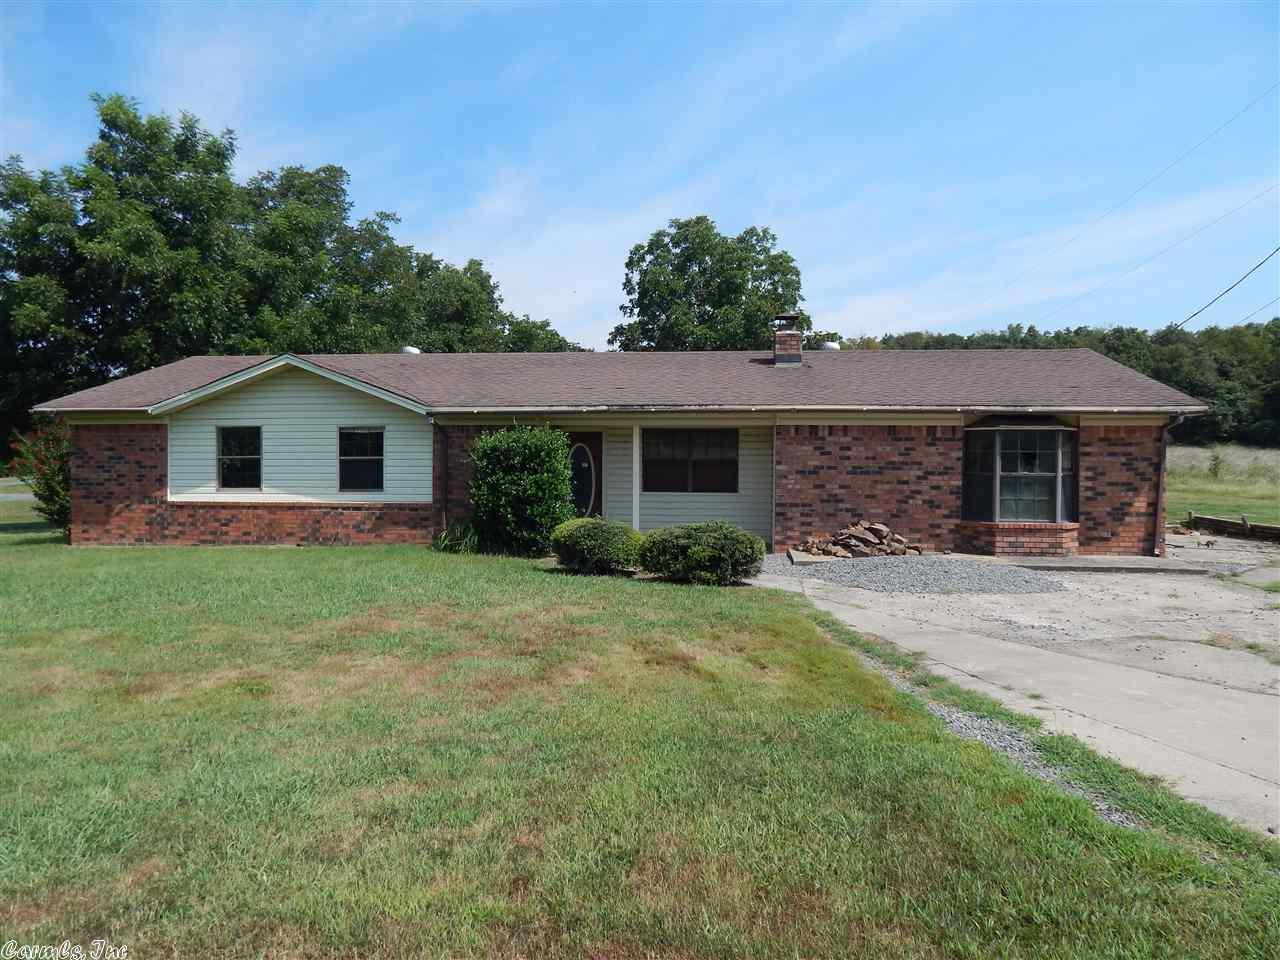 flipping_business_flip_house_before_picture_southern_arkansas_extorior.jpeg